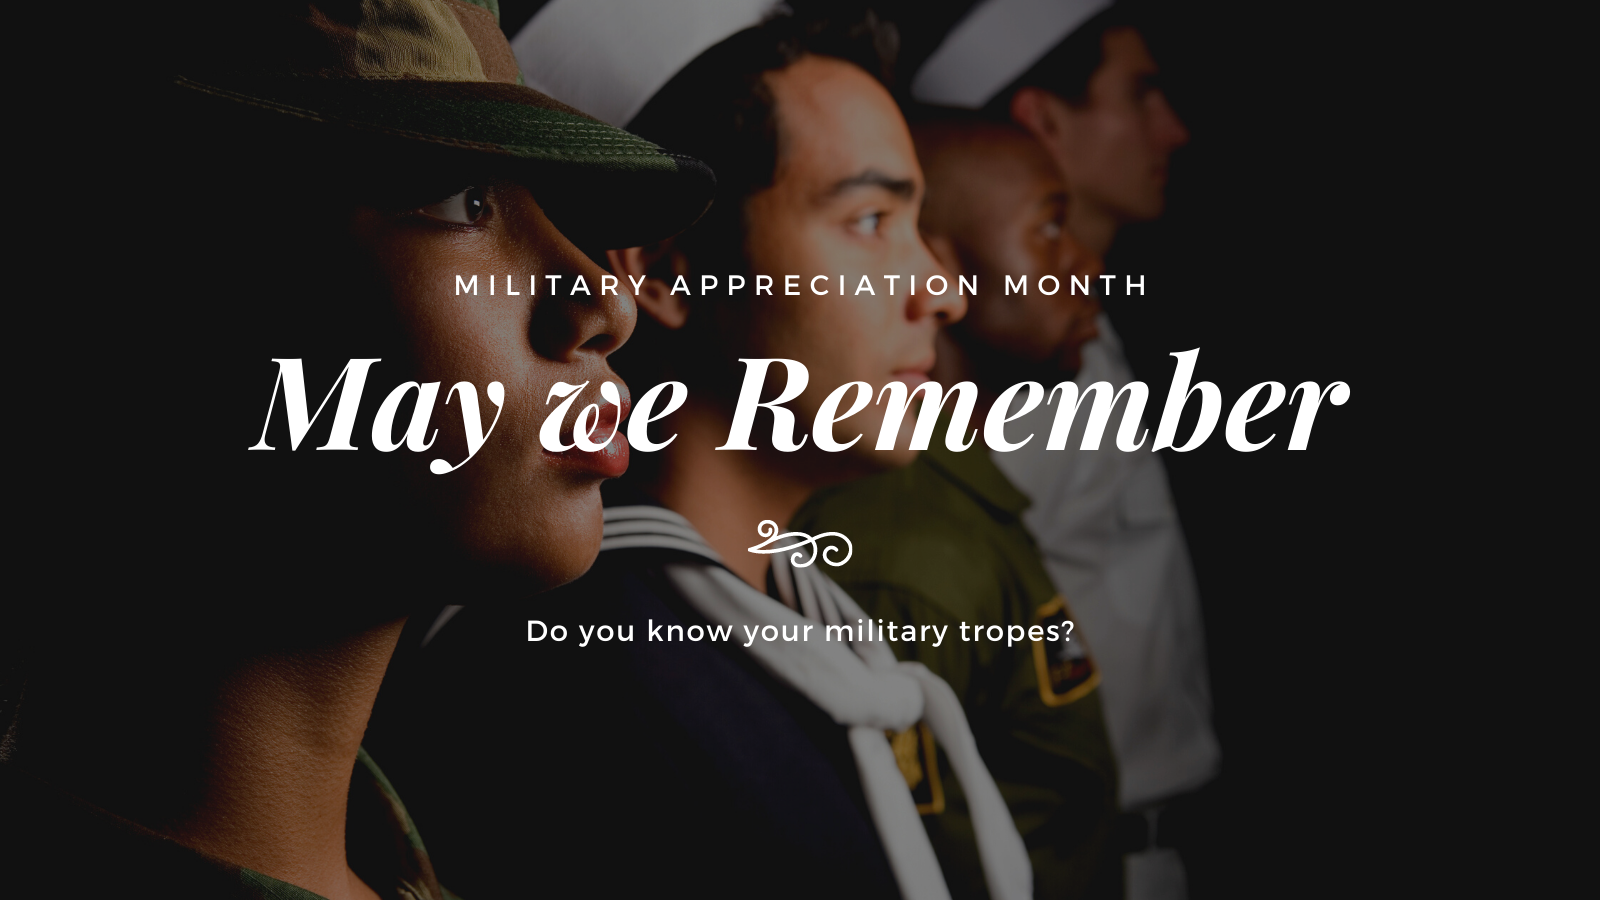 twitter post for May we remember blog hop